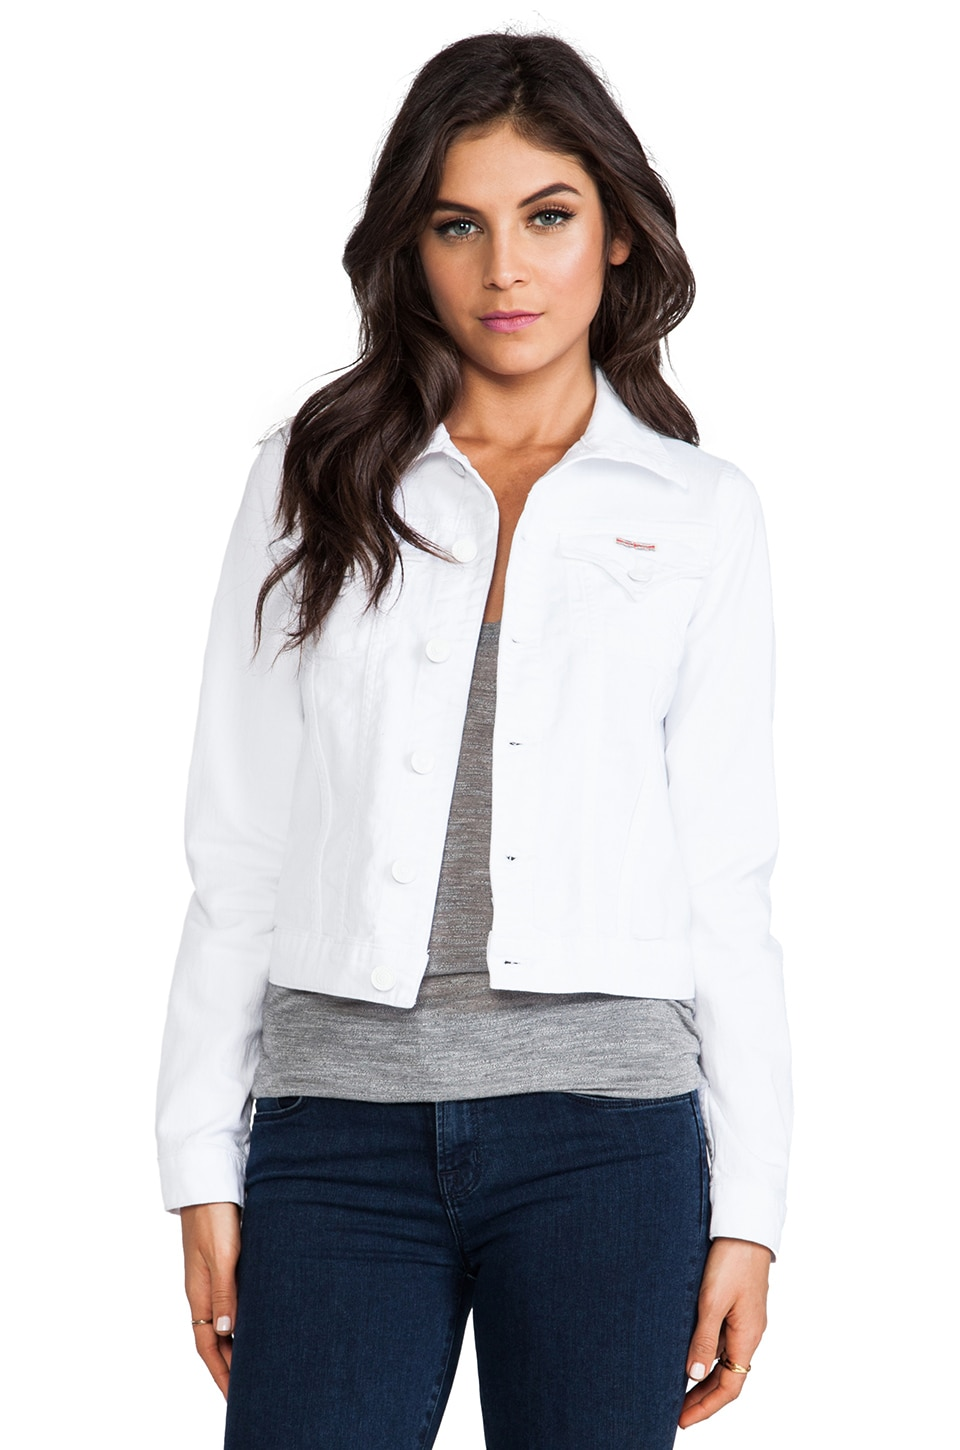 Hudson Jeans Signature Jean Jacket in White